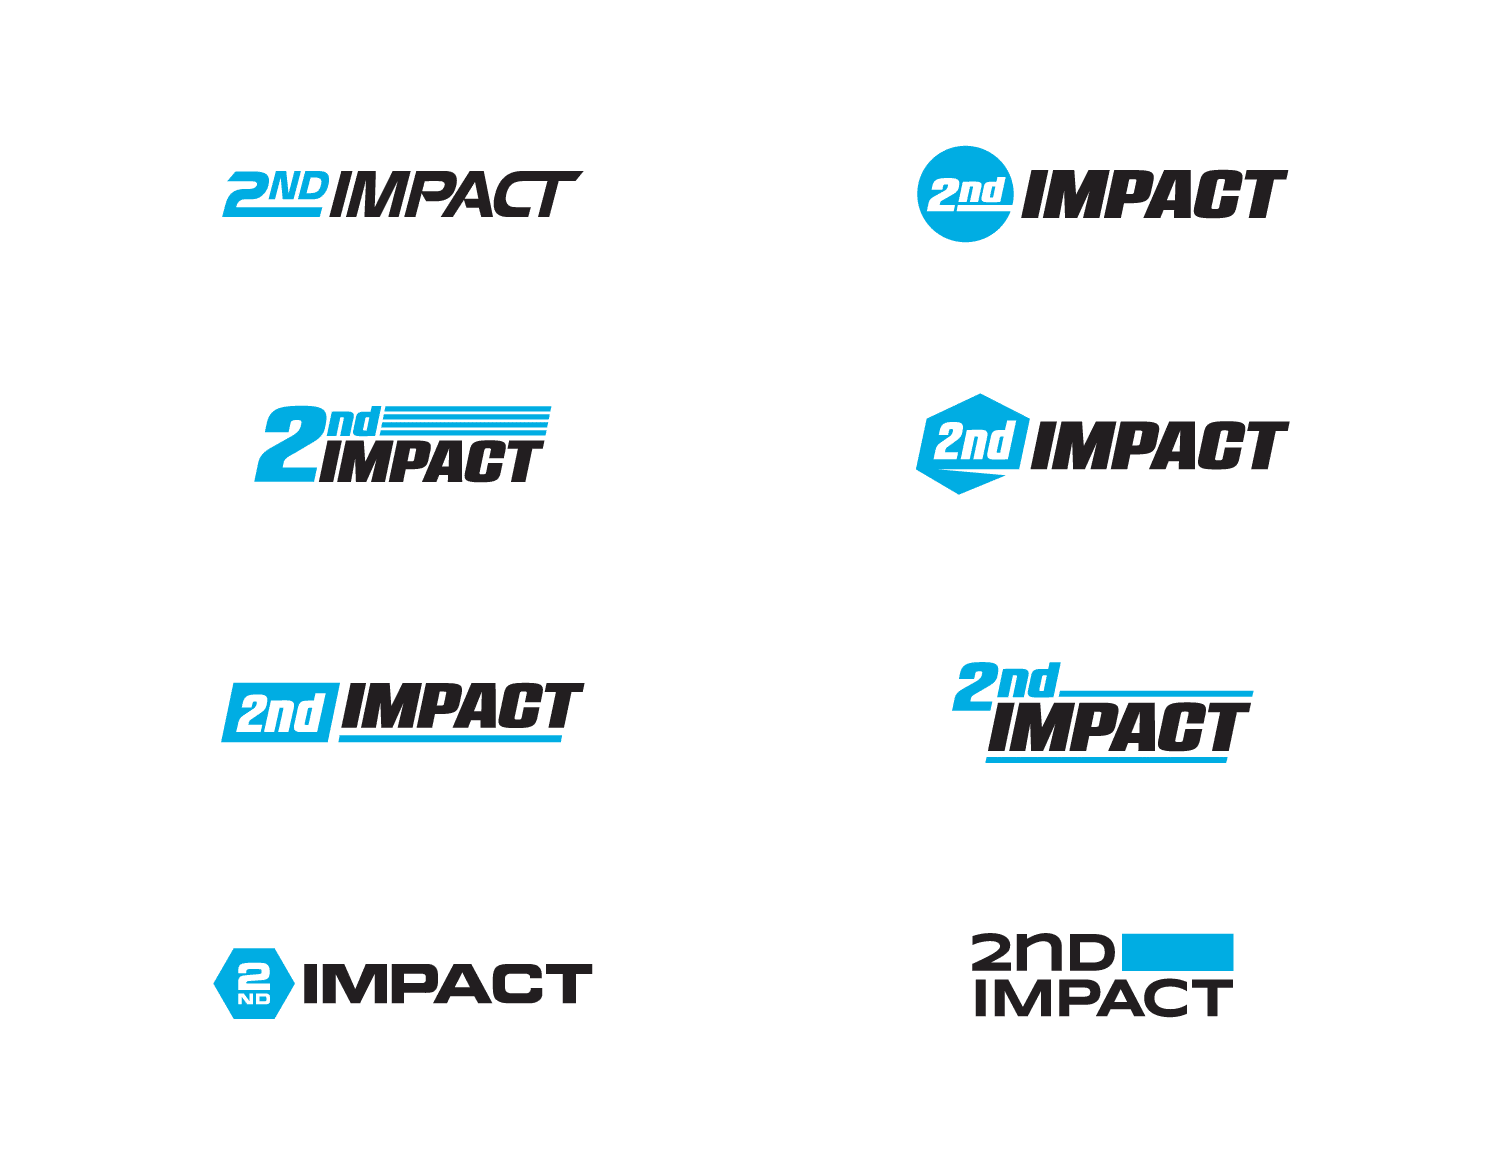 2nd Impact logo design round 1